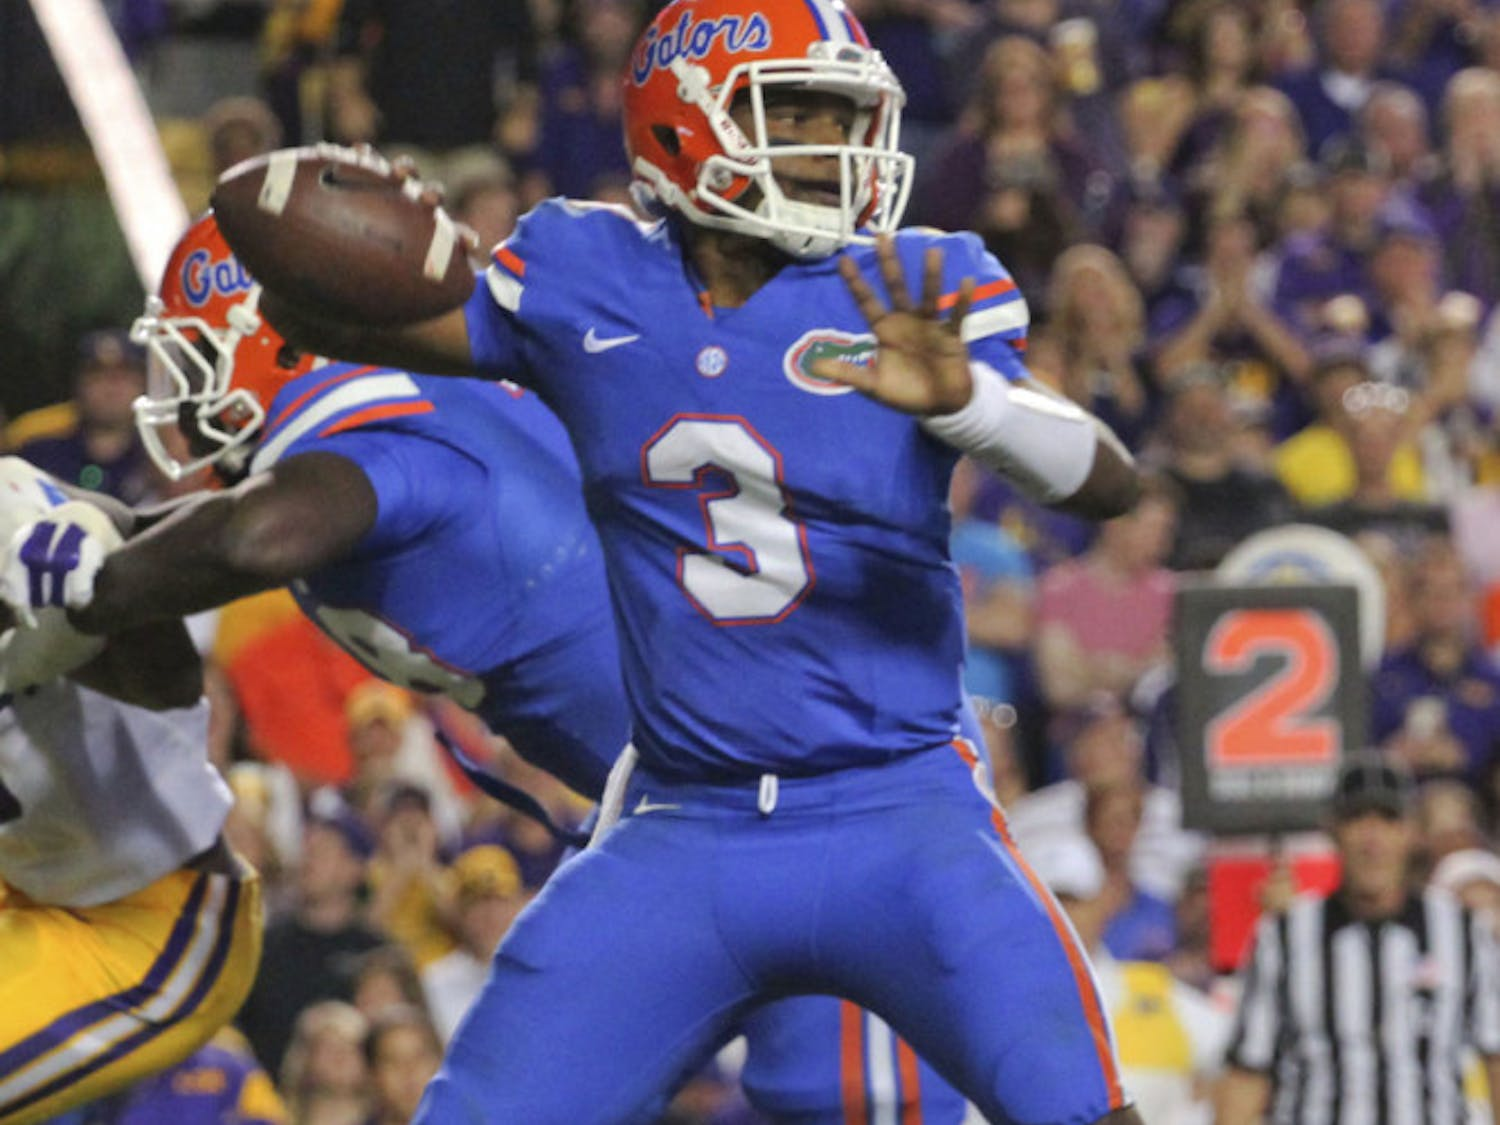 UF quarterback Treon Harris attempts a pass on Oct. 17, 2015, against LSU.